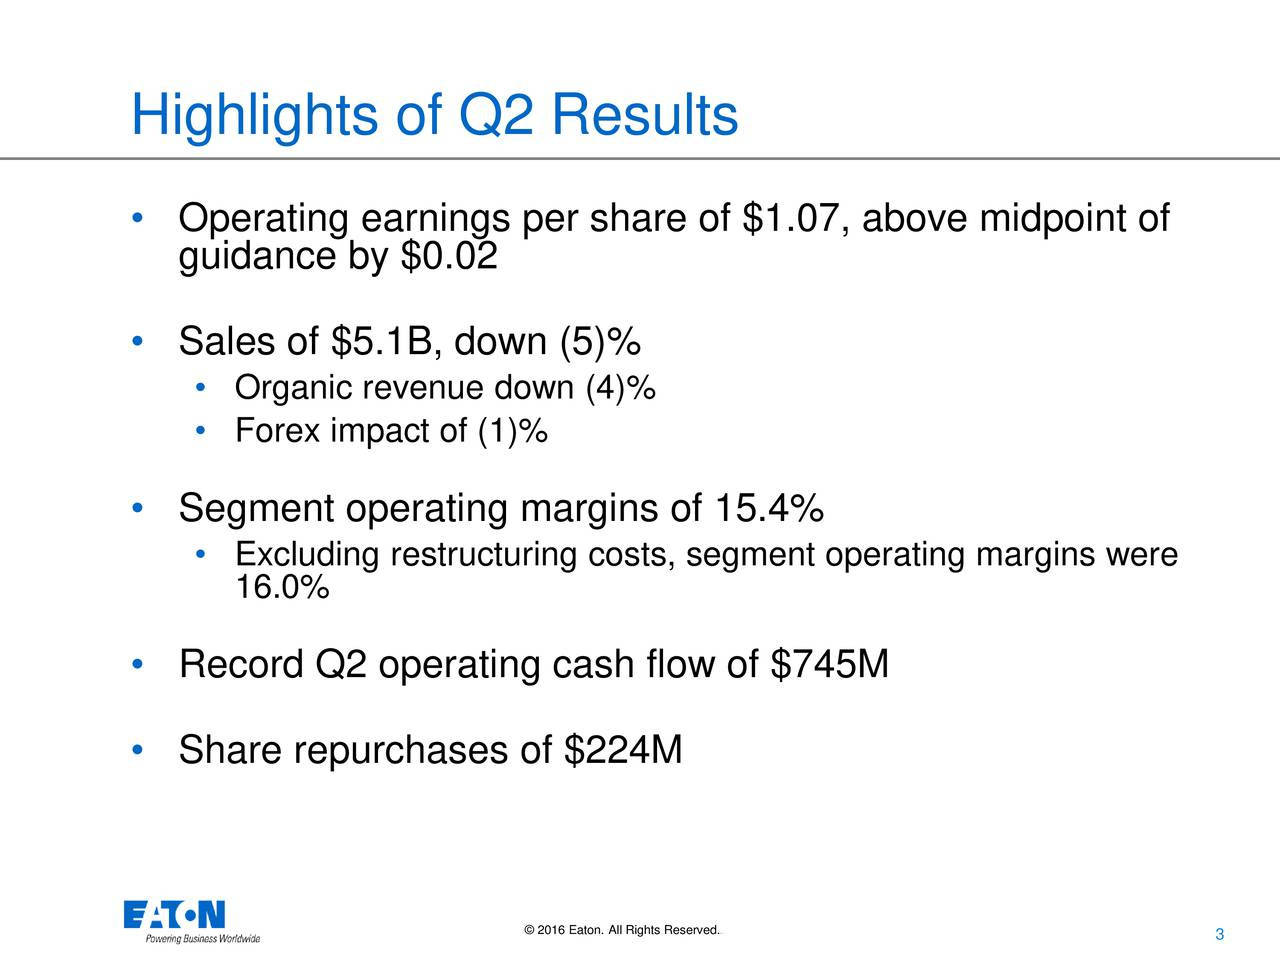 Operating earnings per share of $1.07, above midpoint of guidance by $0.02 Sales of $5.1B, down (5)% Organic revenue down (4)% Forex impact of (1)% Segment operating margins of 15.4% Excluding restructuring costs, segment operating margins were 16.0% Record Q2 operating cash flow of $745M Share repurchases of $224M 2016 Eaton. All Rights Reserved.. 3